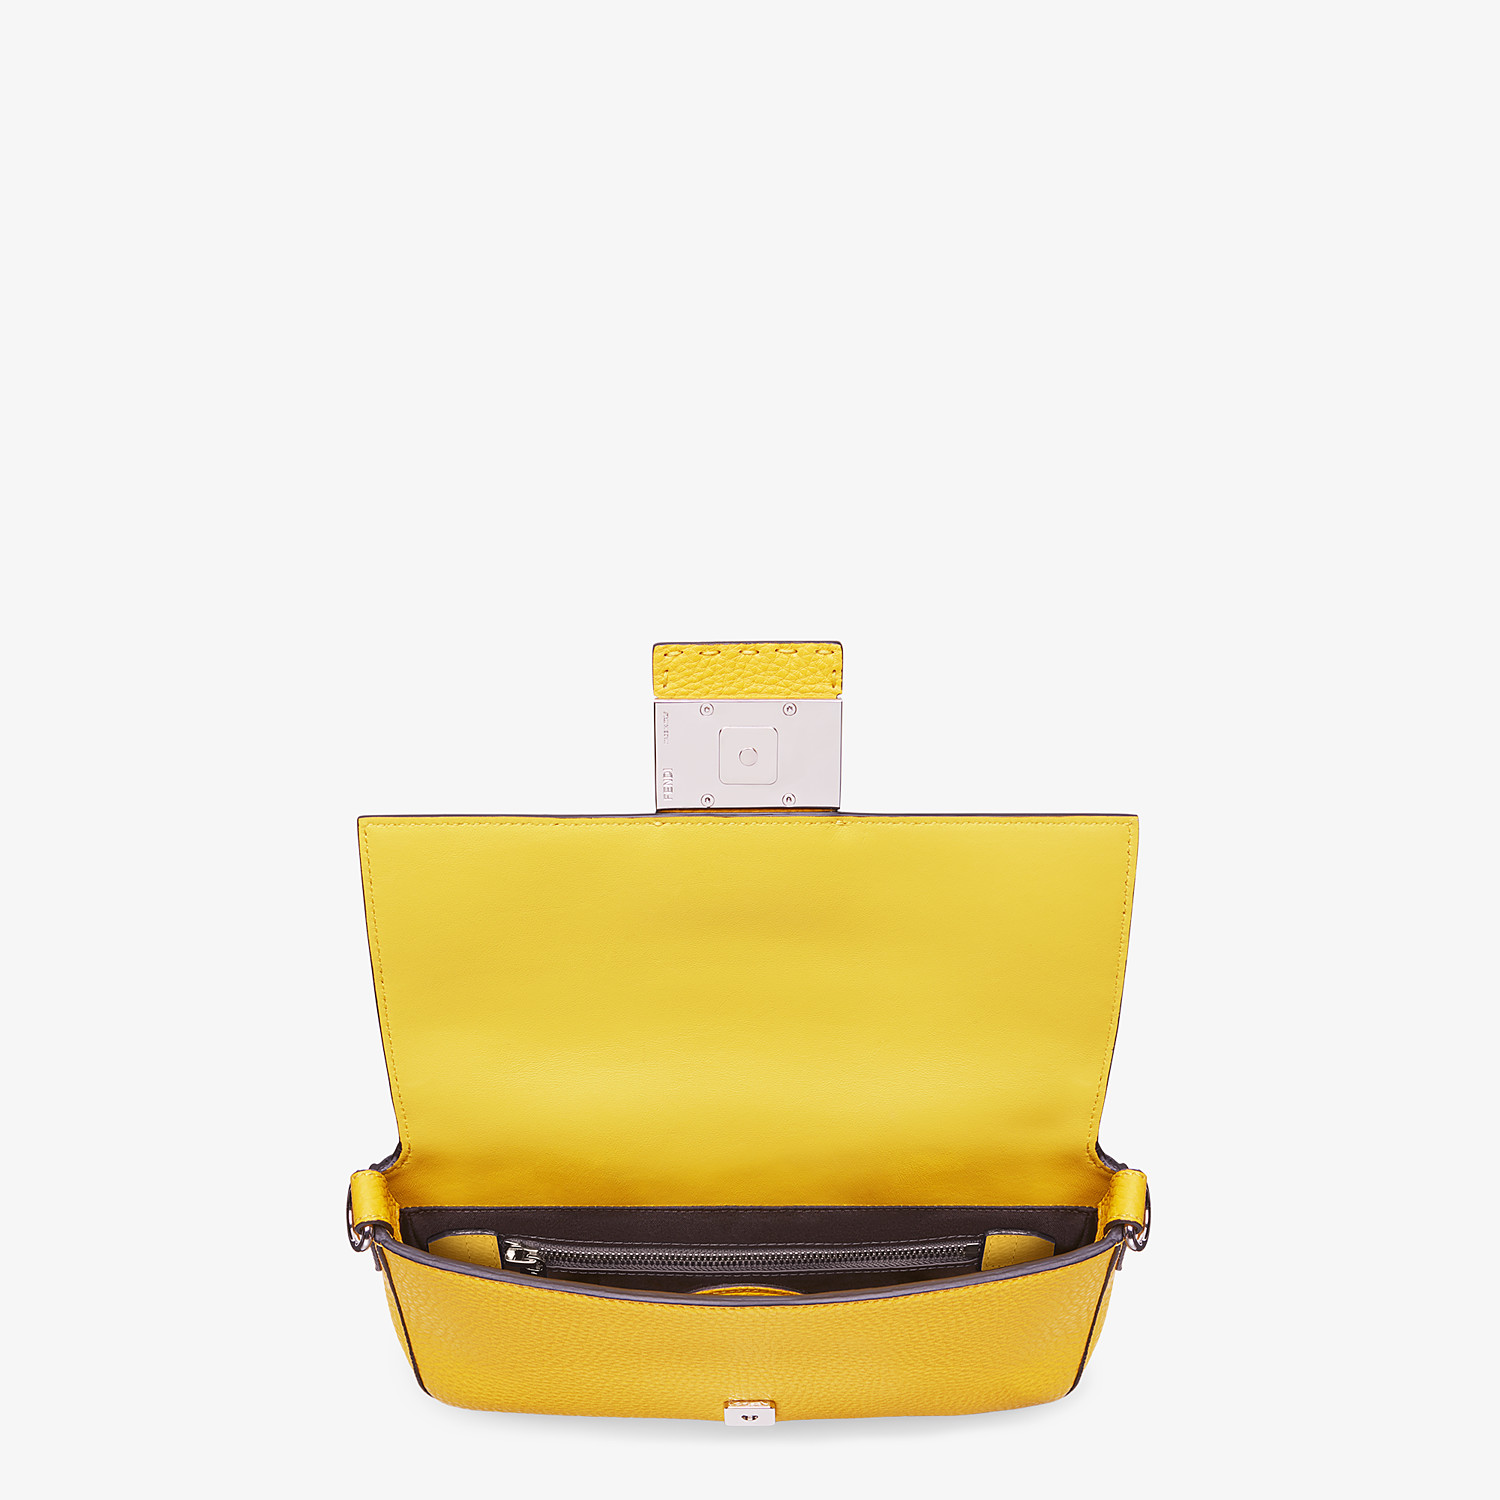 FENDI BAGUETTE - Yellow leather bag - view 5 detail